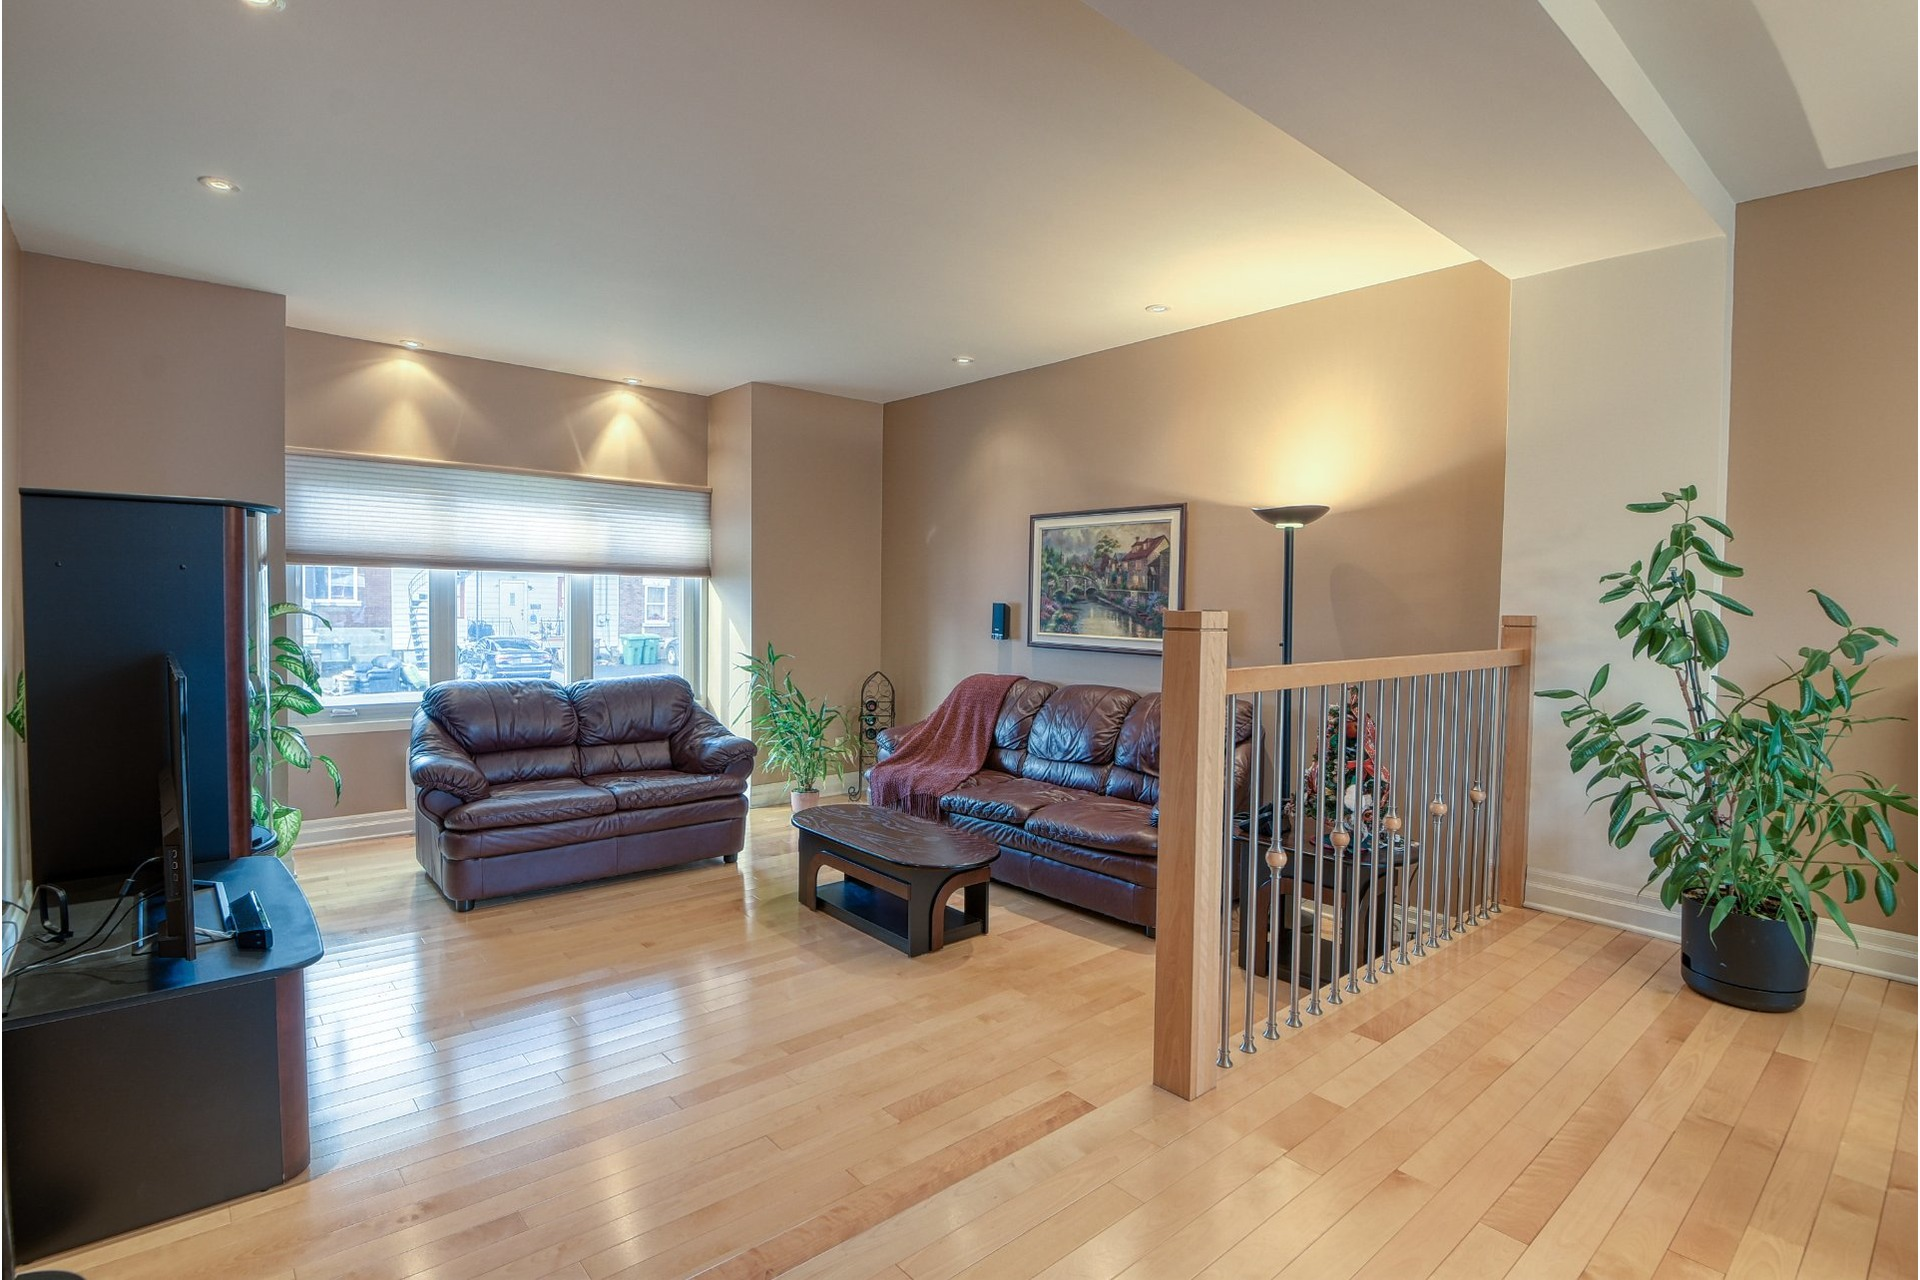 image 2 - House For sale Lachine Montréal  - 12 rooms